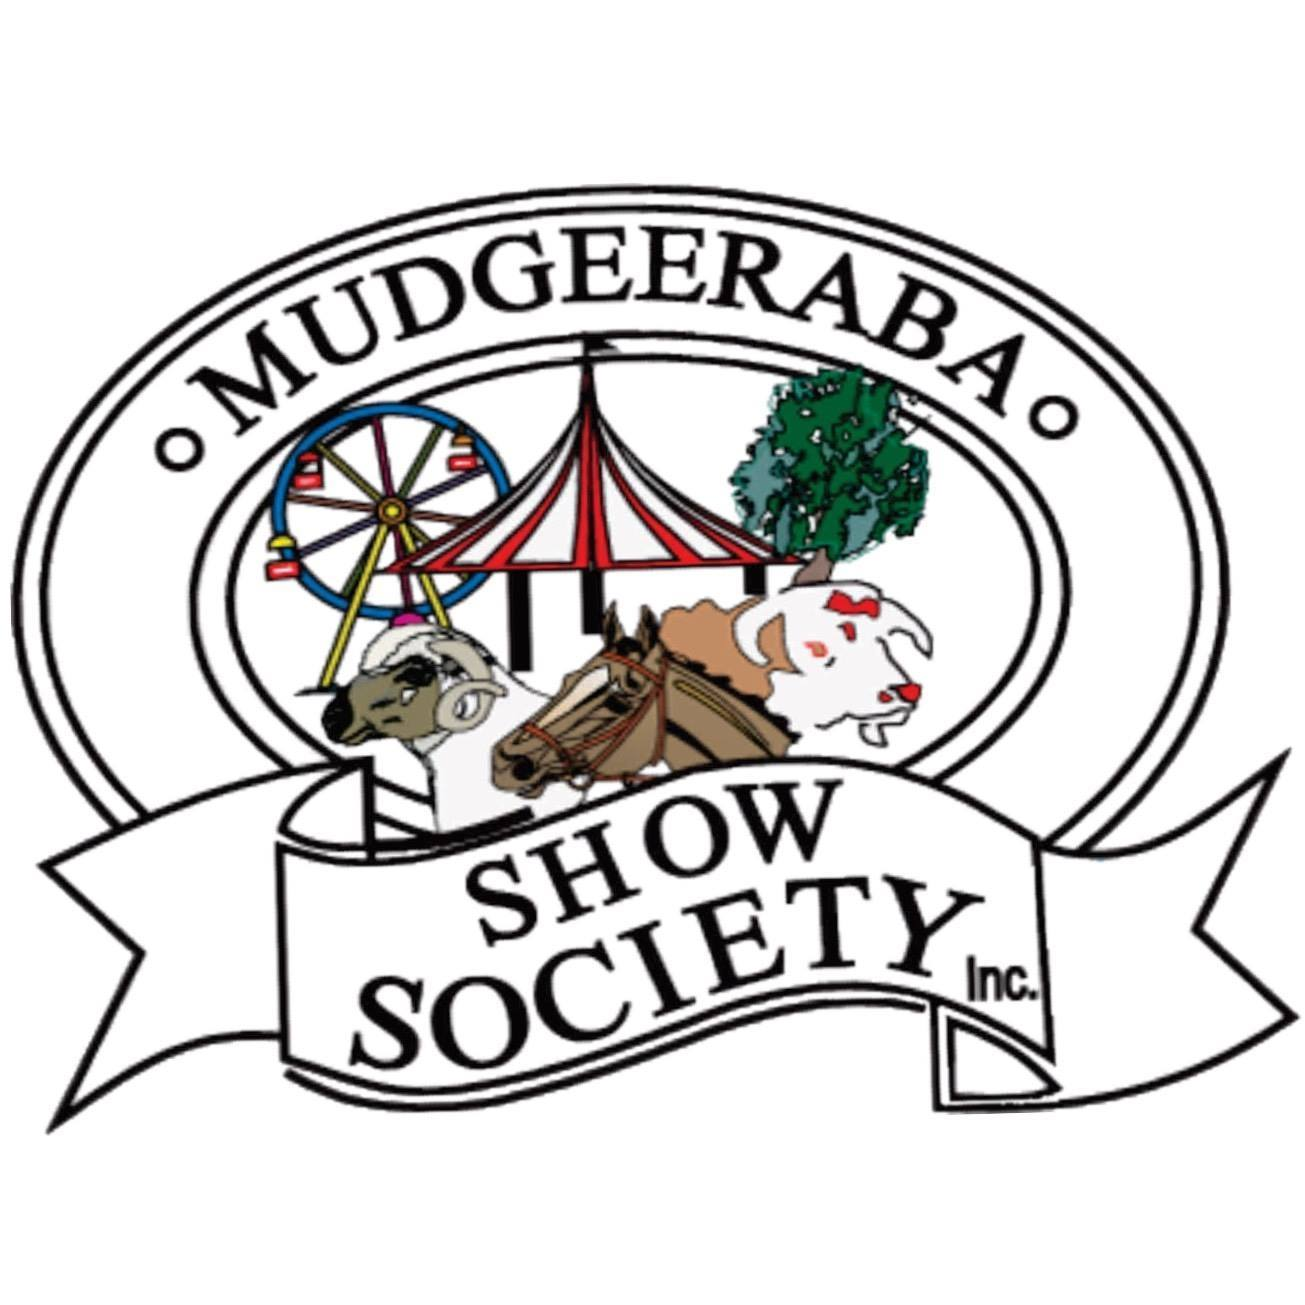 You are currently viewing Mudgeeraba Agricultural Show